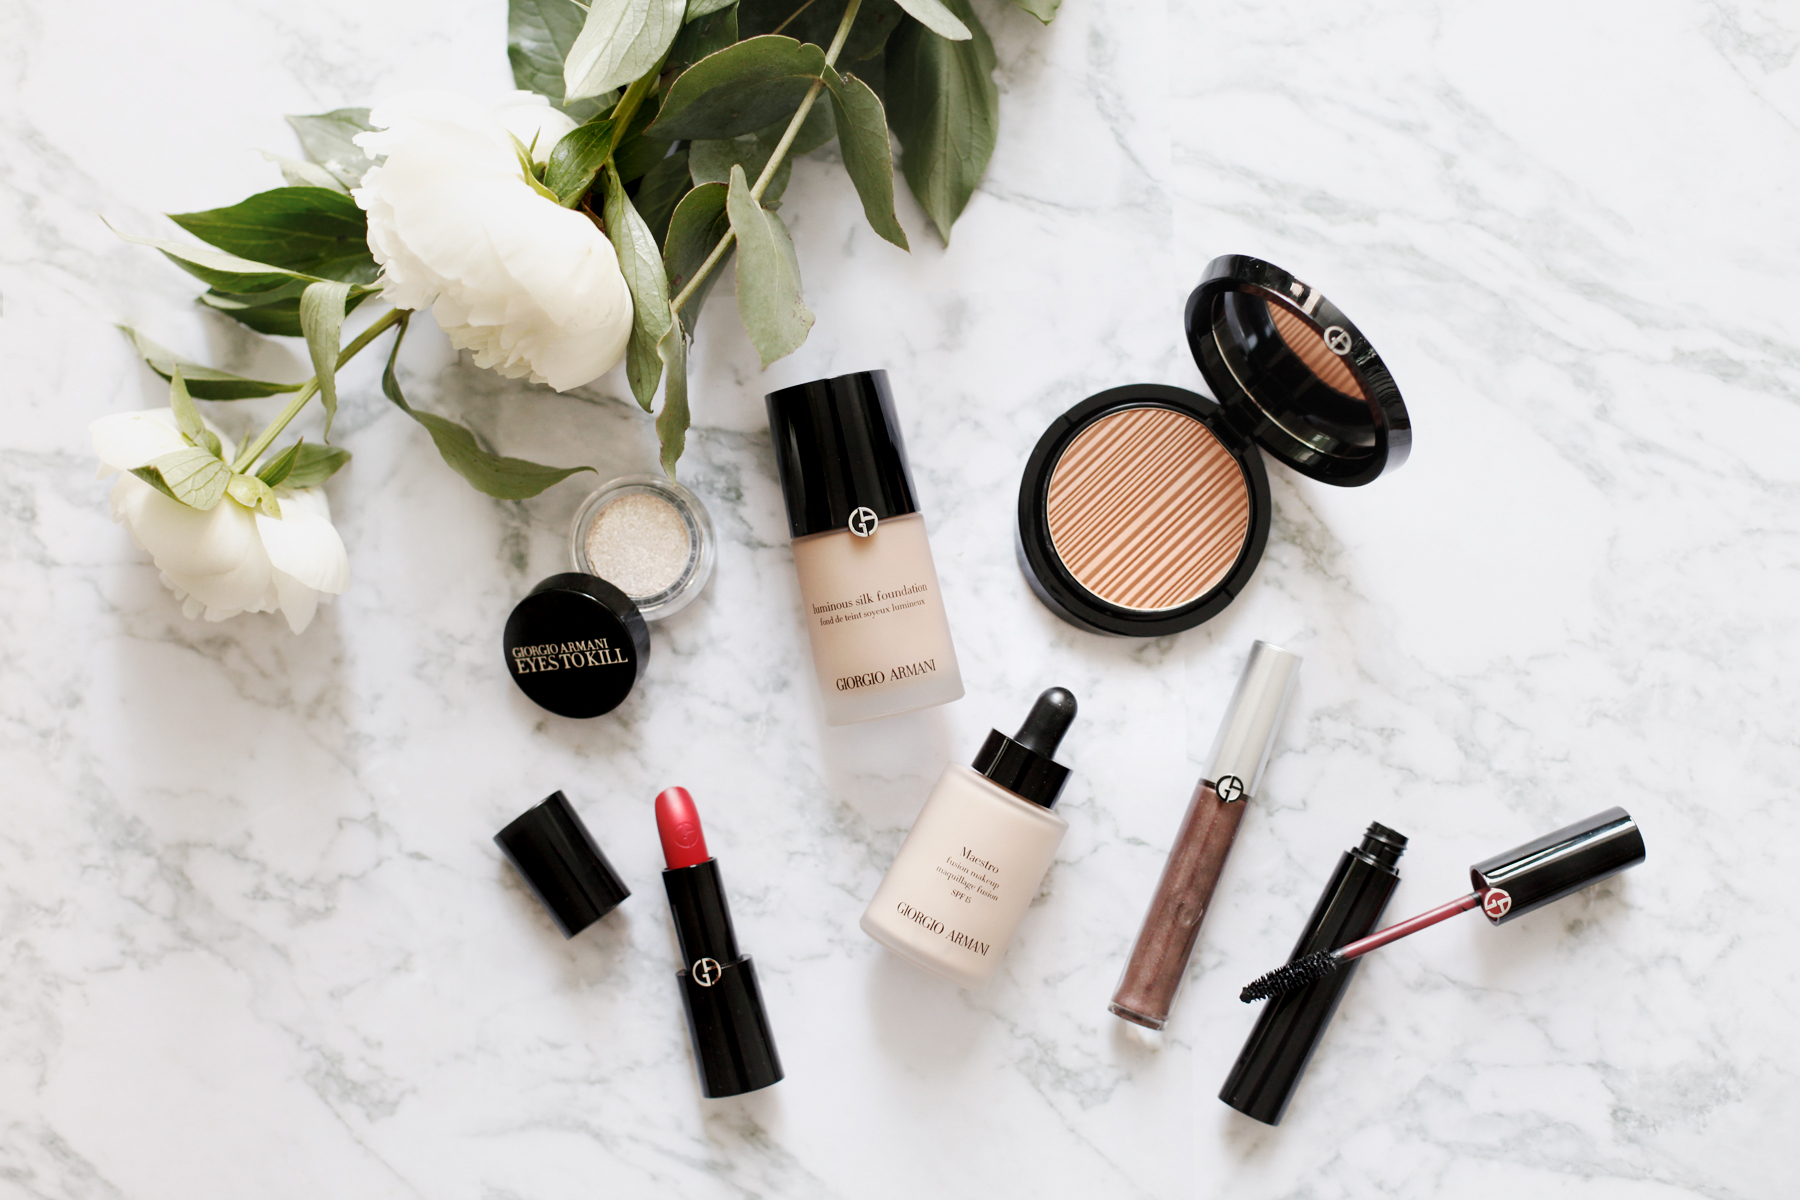 armani beauty makeup beauty beautyblogger bronzer red lipstick luxury products douglas mascara marble peony white flatlay cats & dogs beautyblog ricarda schernus schminke bloggerin 1